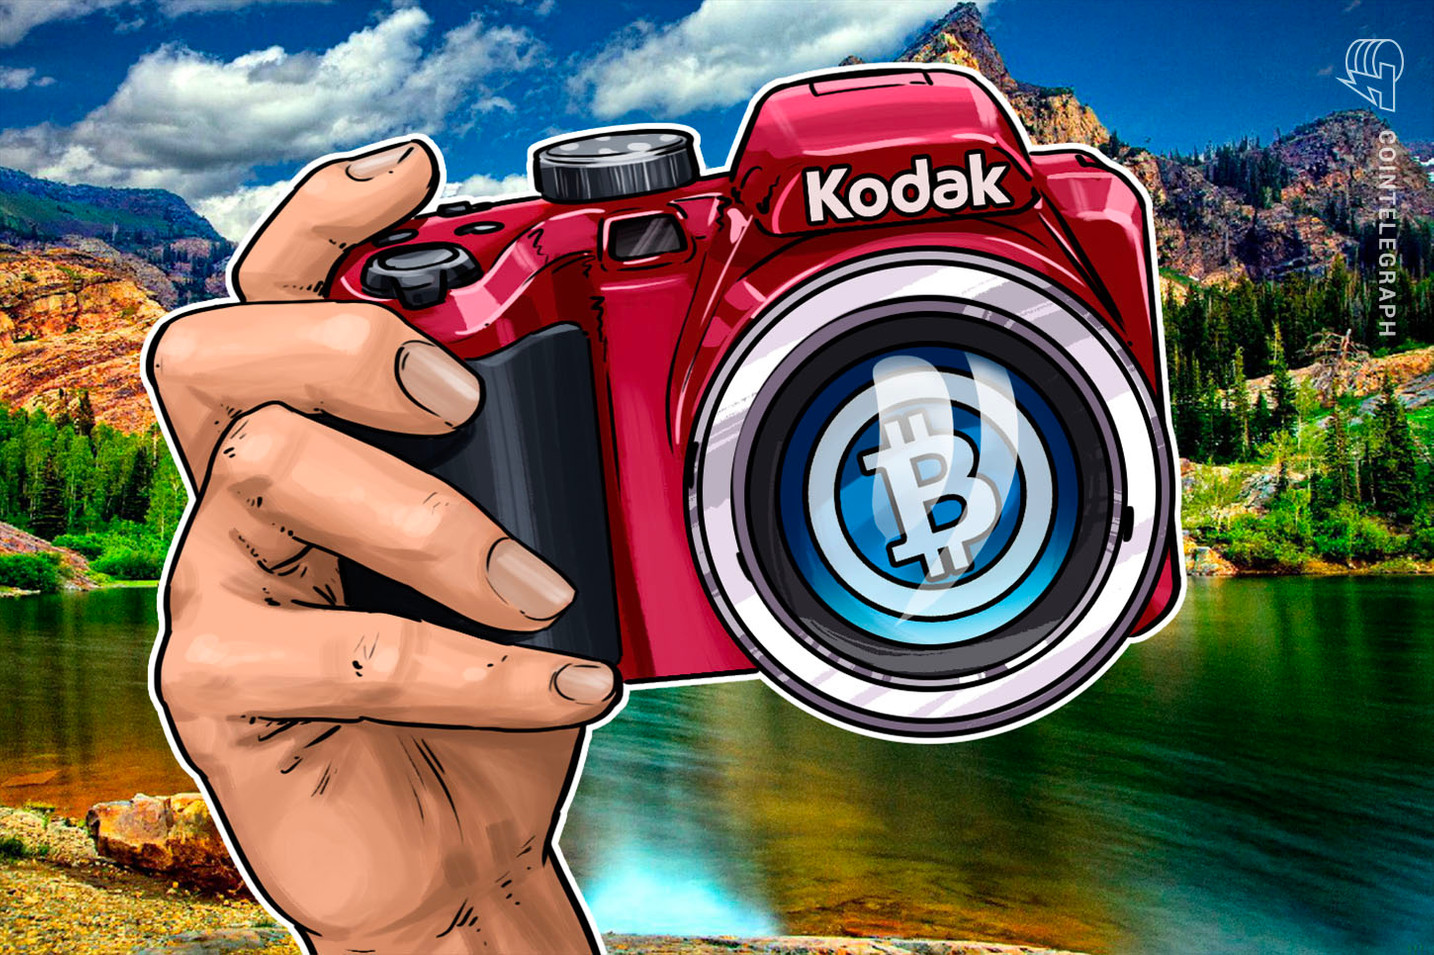 Kodak-Branded Crypto Miner-for-Rent Scheme Fizzles Out